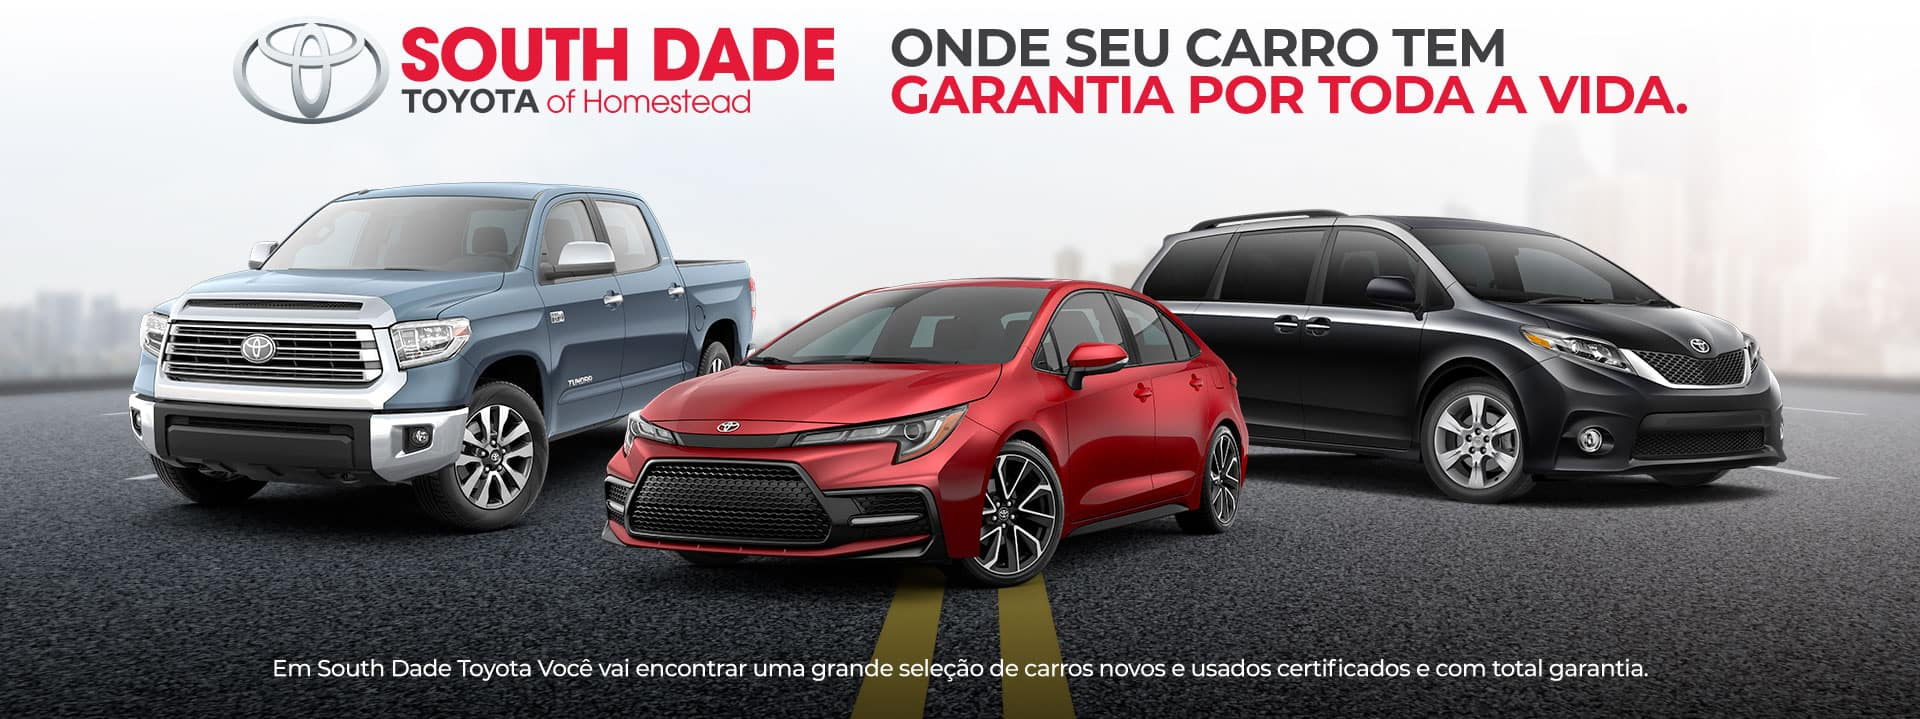 South Dade Toyota Brasil Commercial Banner 1